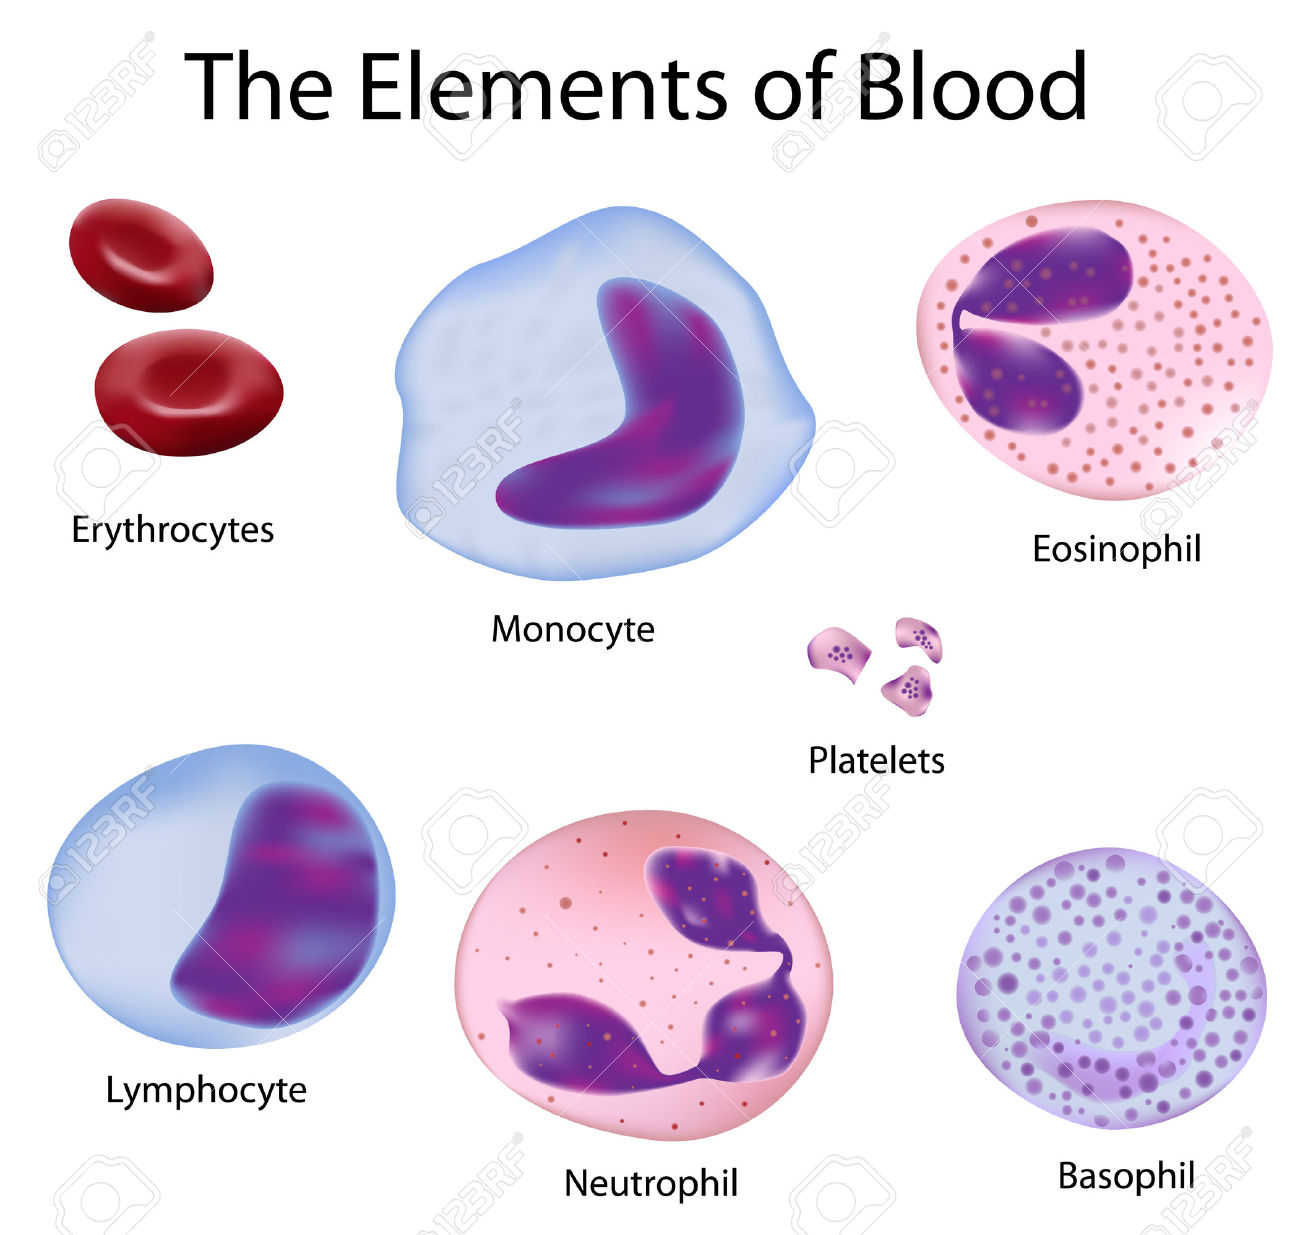 Platelet clipart - Clipground